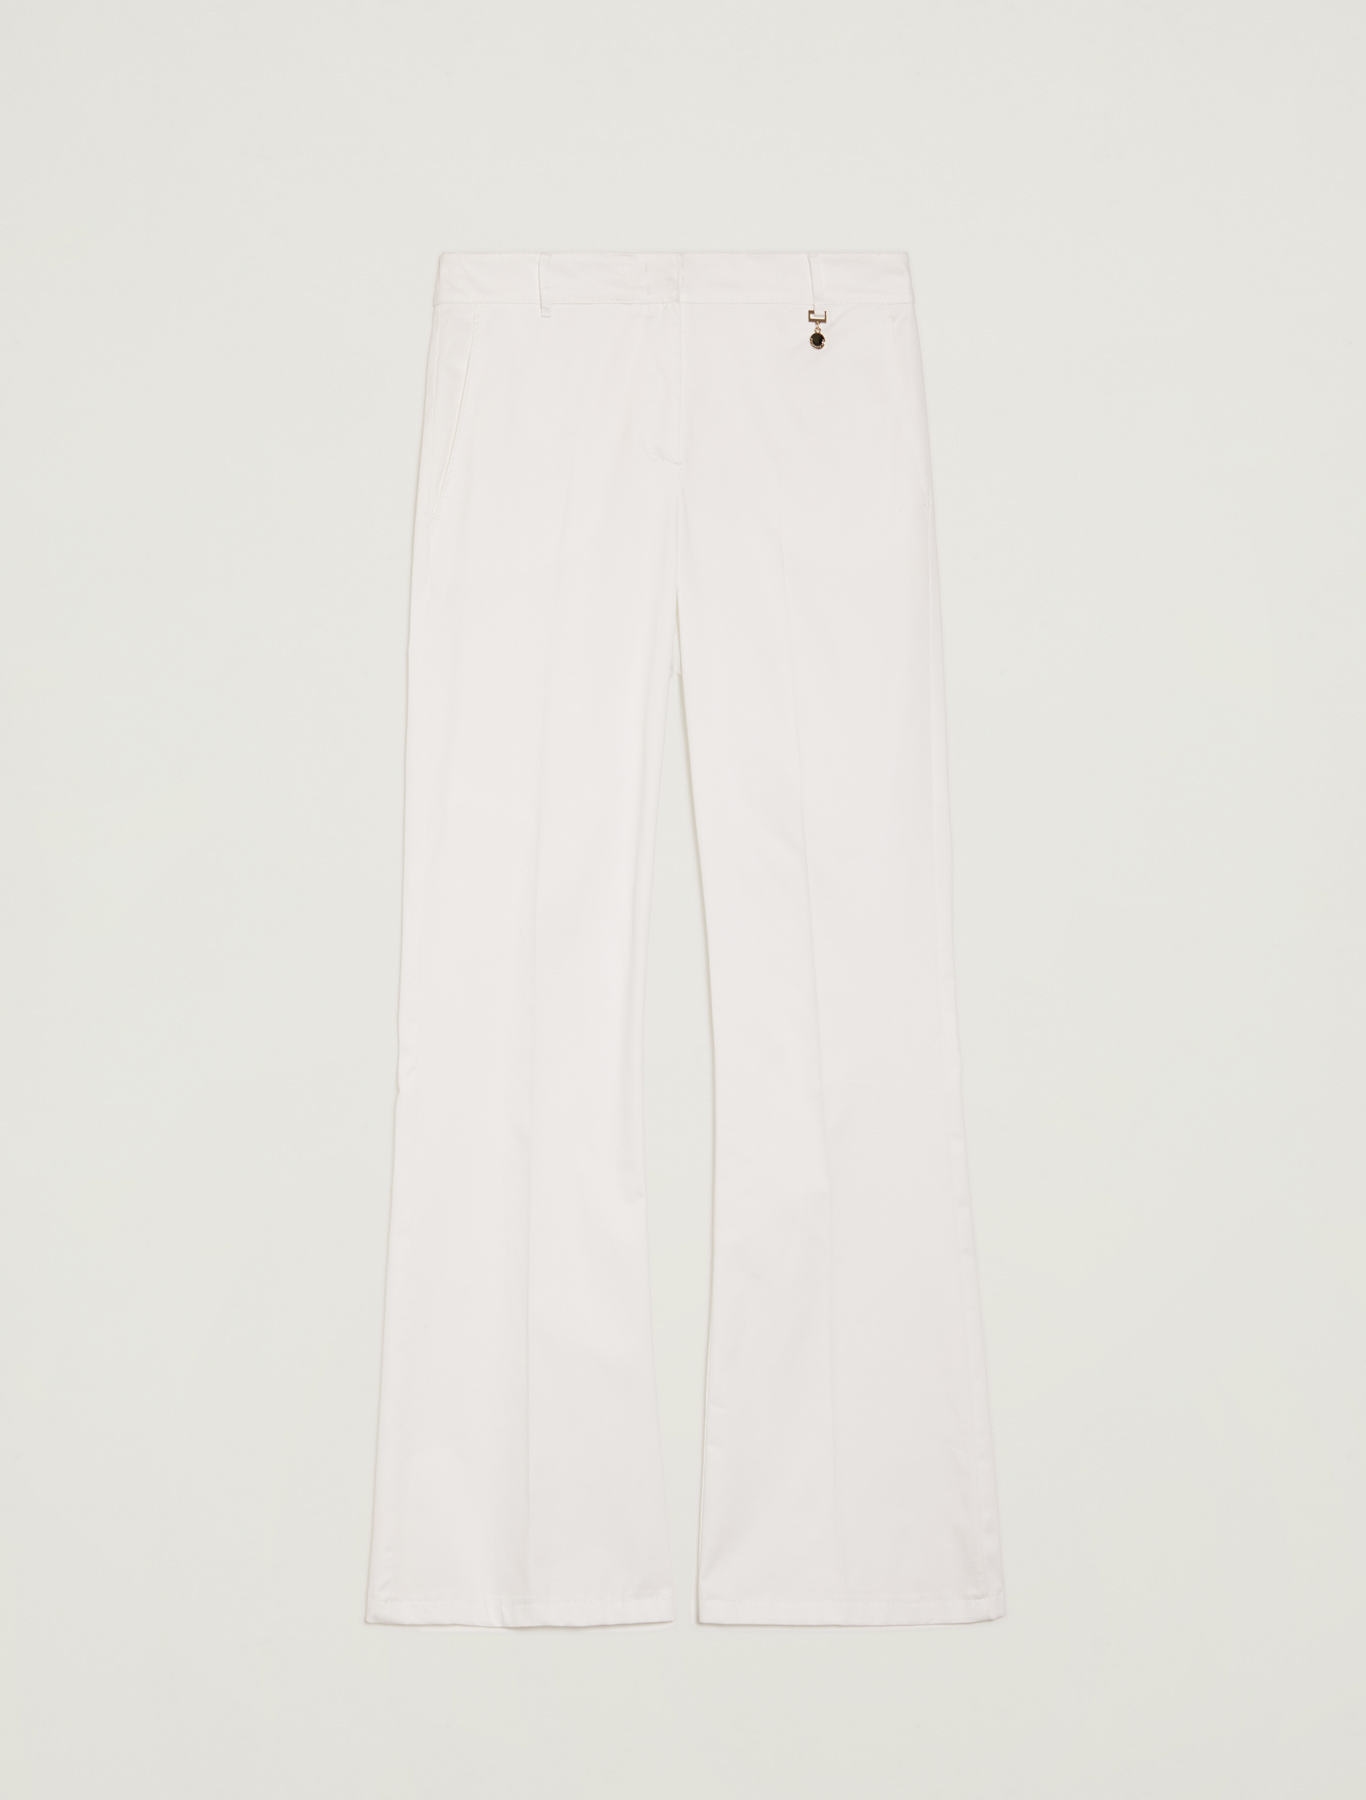 Cotton satin trousers - white - pennyblack